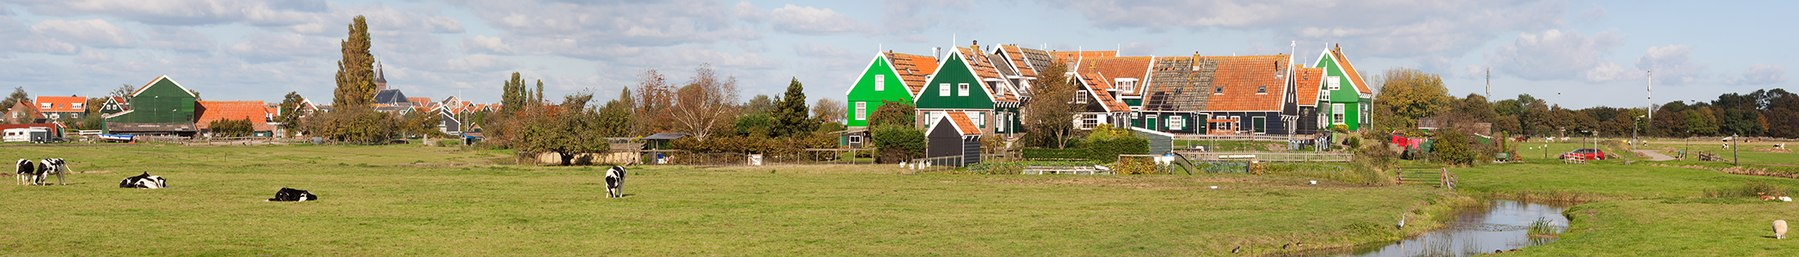 Marken, the Netherlands banner.jpg